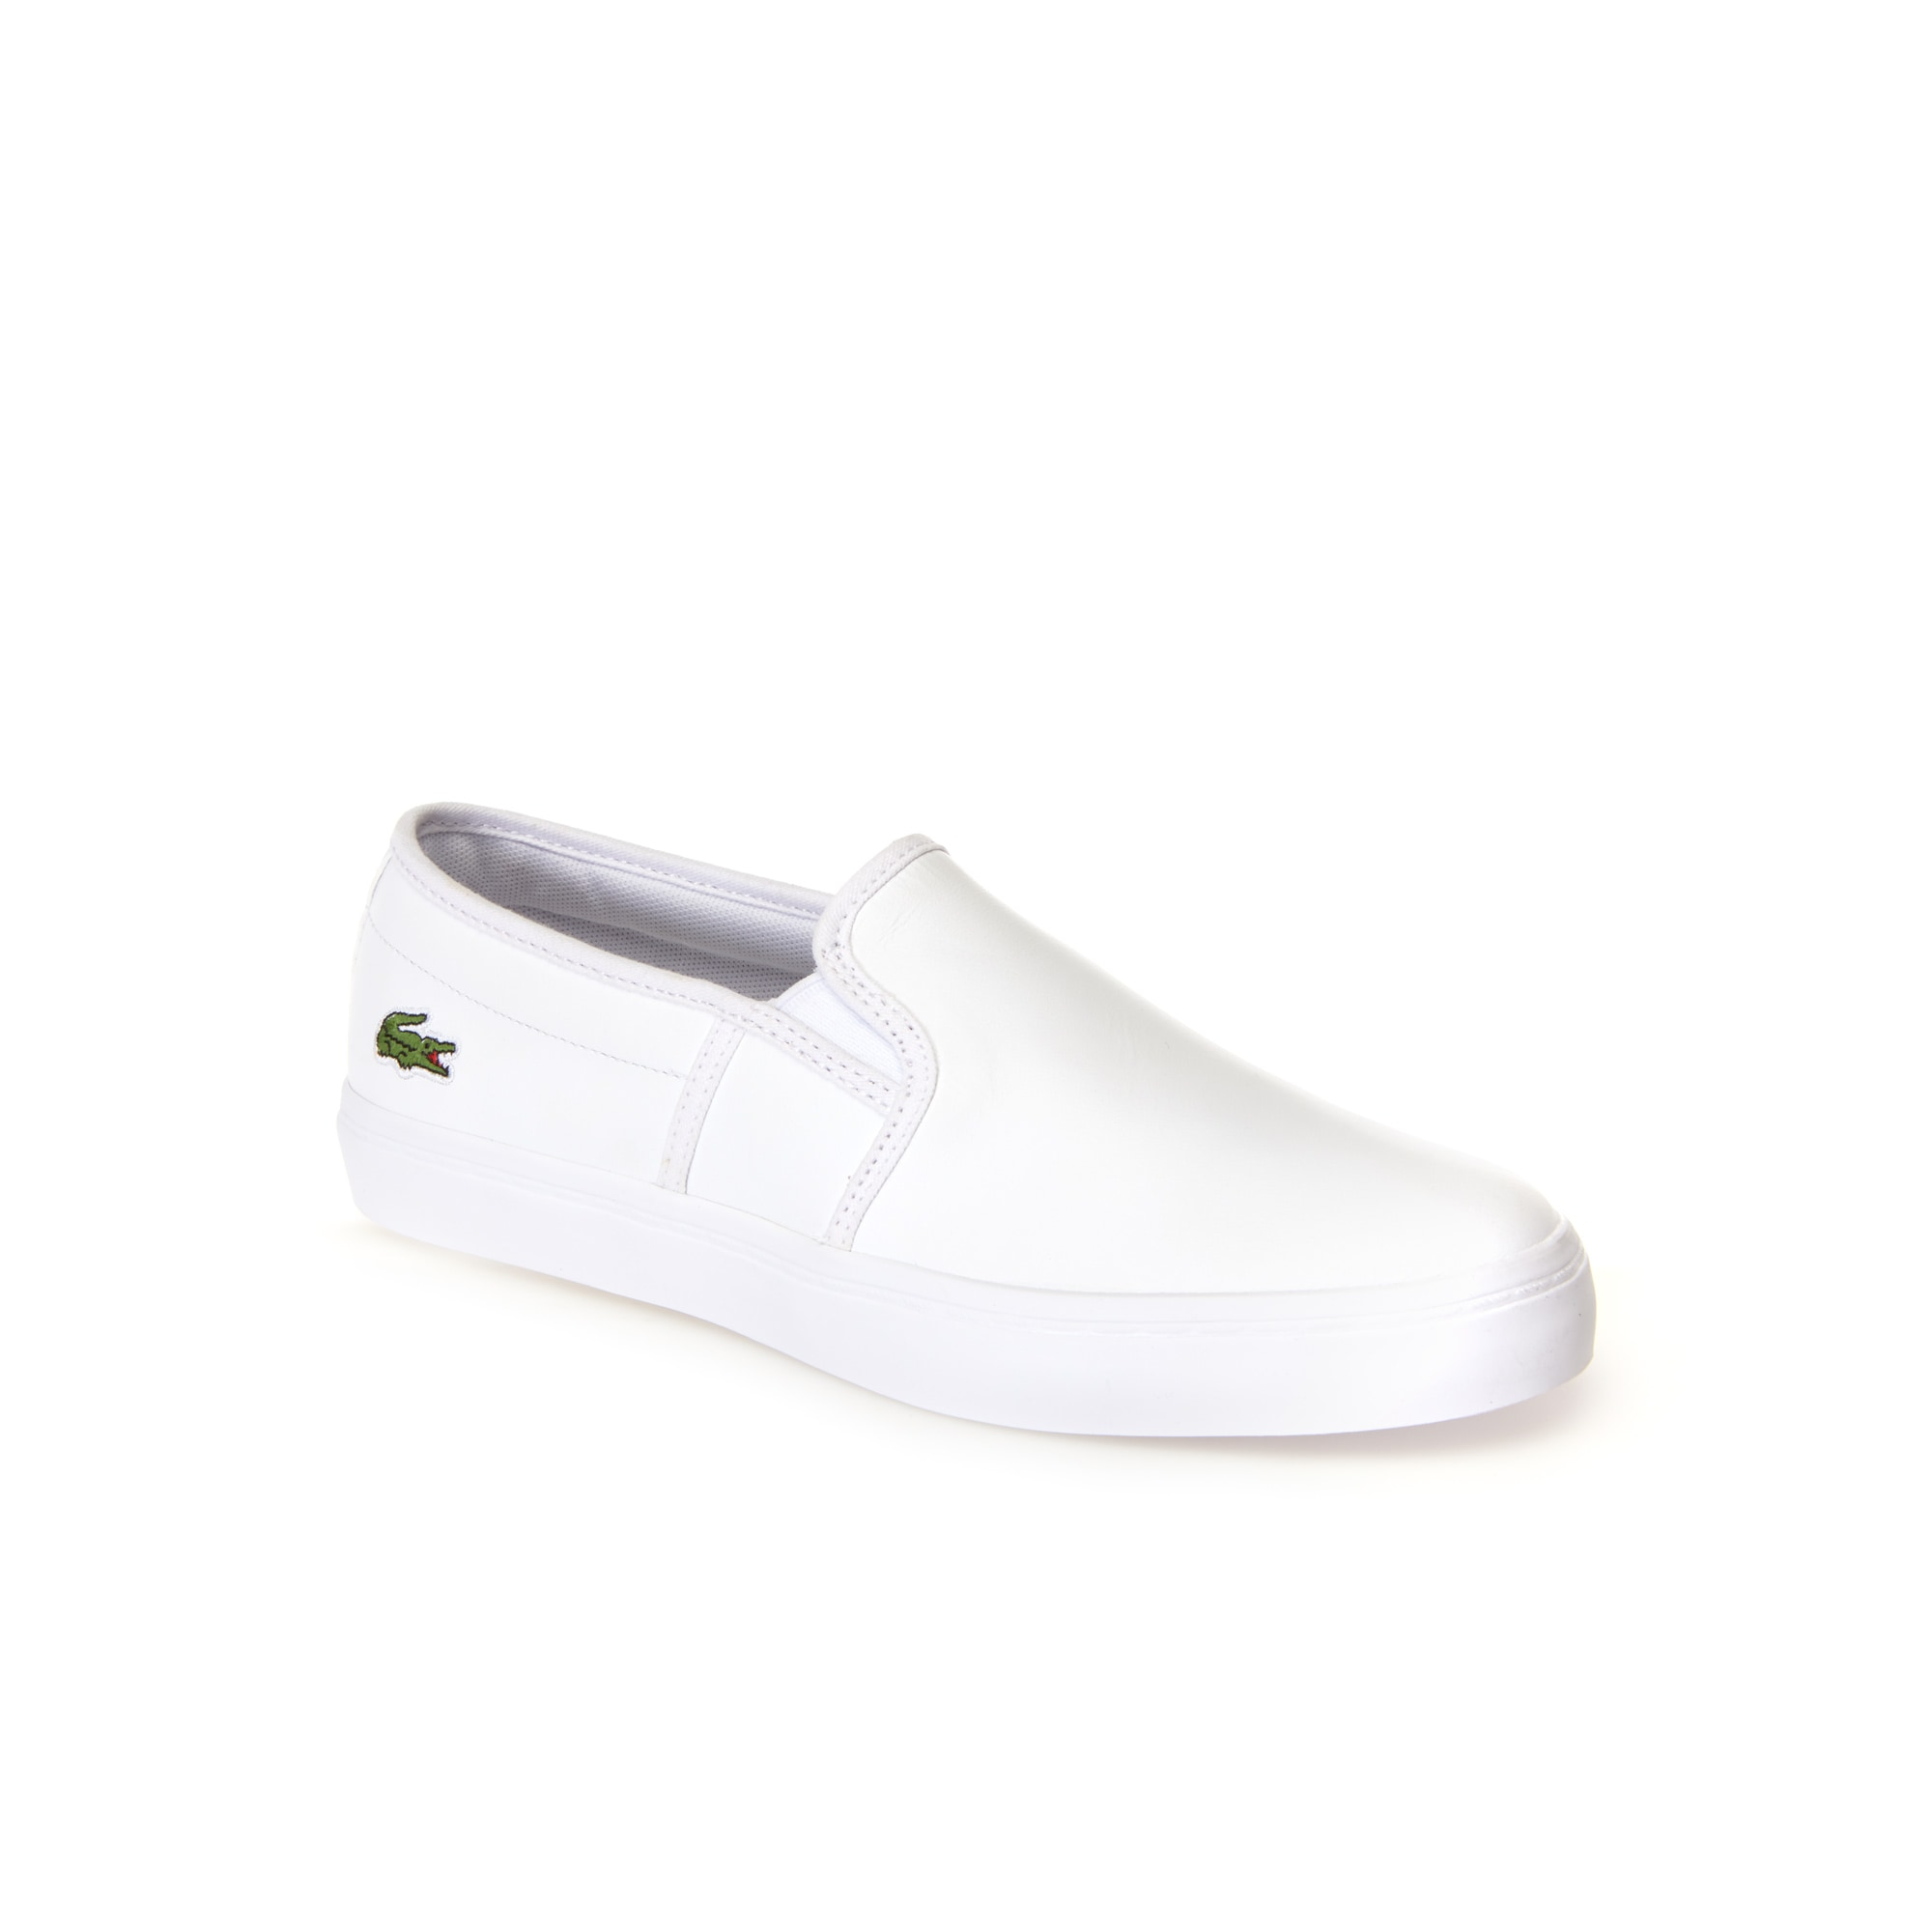 f920eecd1b Chaussures femme | Collection Femme | LACOSTE